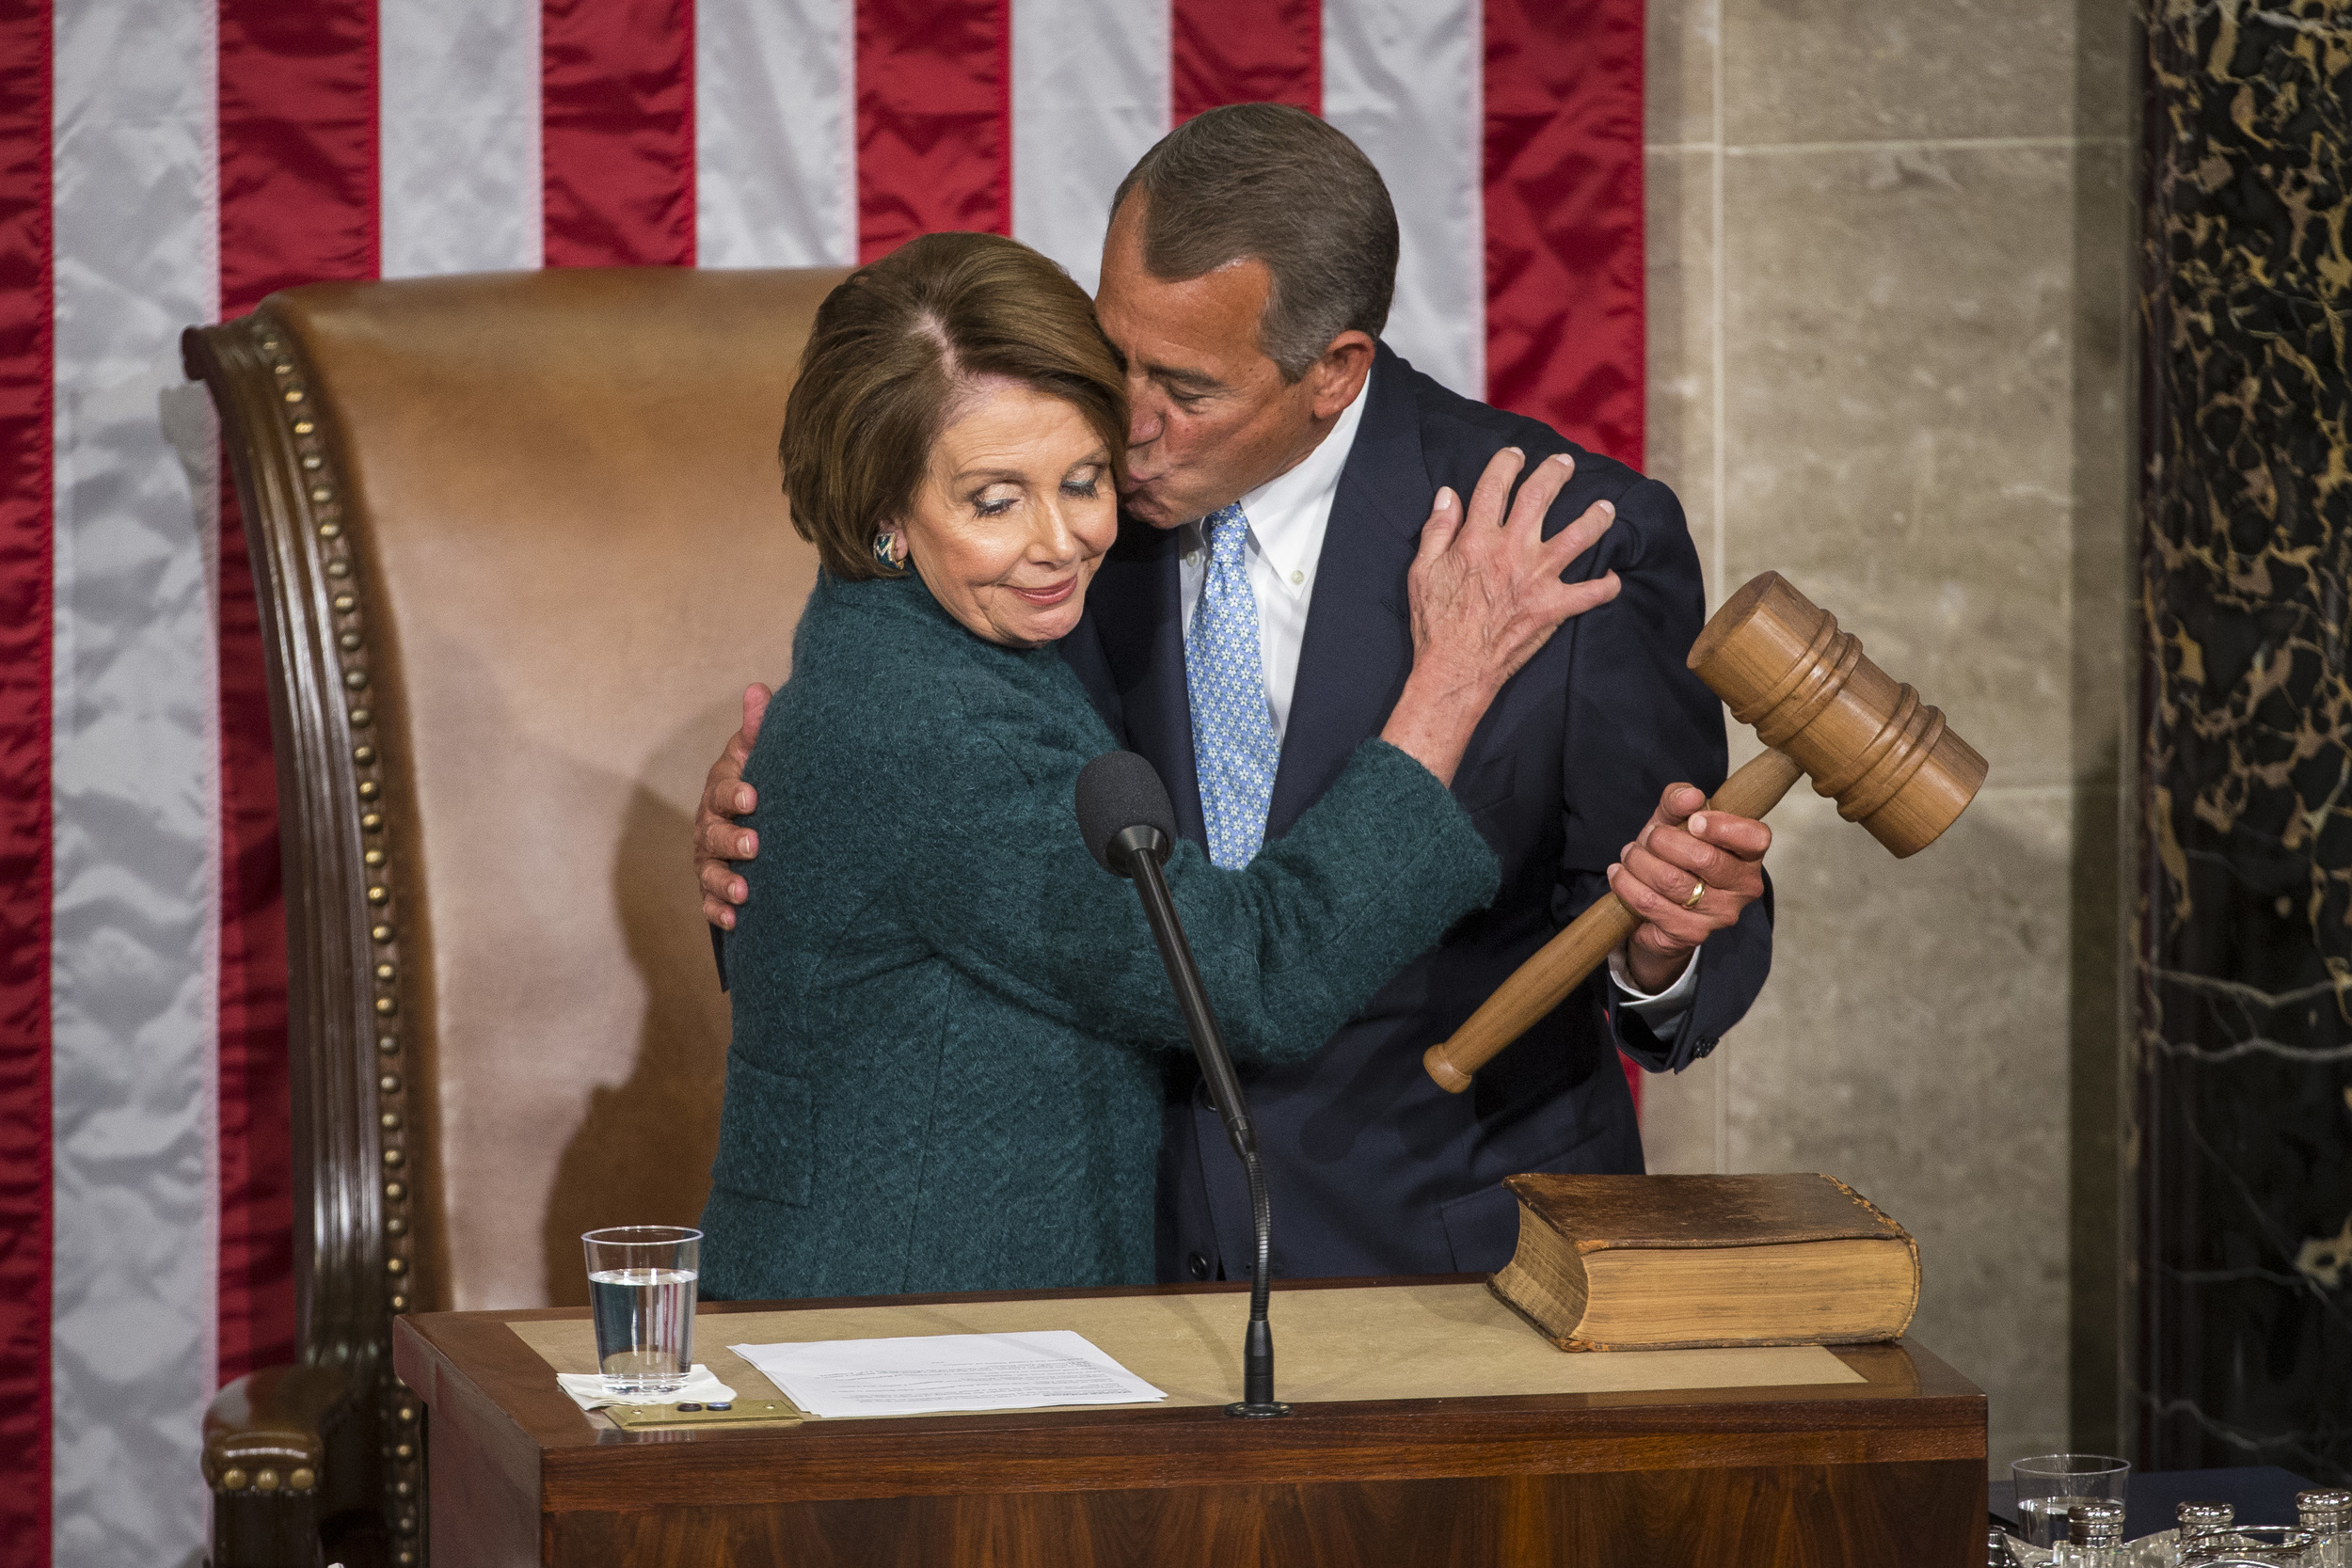 House Speaker John Boehner of Ohio, kisses House Minority Leader Nancy Pelosi of Calif. after being re-elected to a third term during the opening session of the 114th Congress, as Republicans assume full control for the first time in eight years on Capitol Hill in Washington, DC on Friday January 06, 2015.